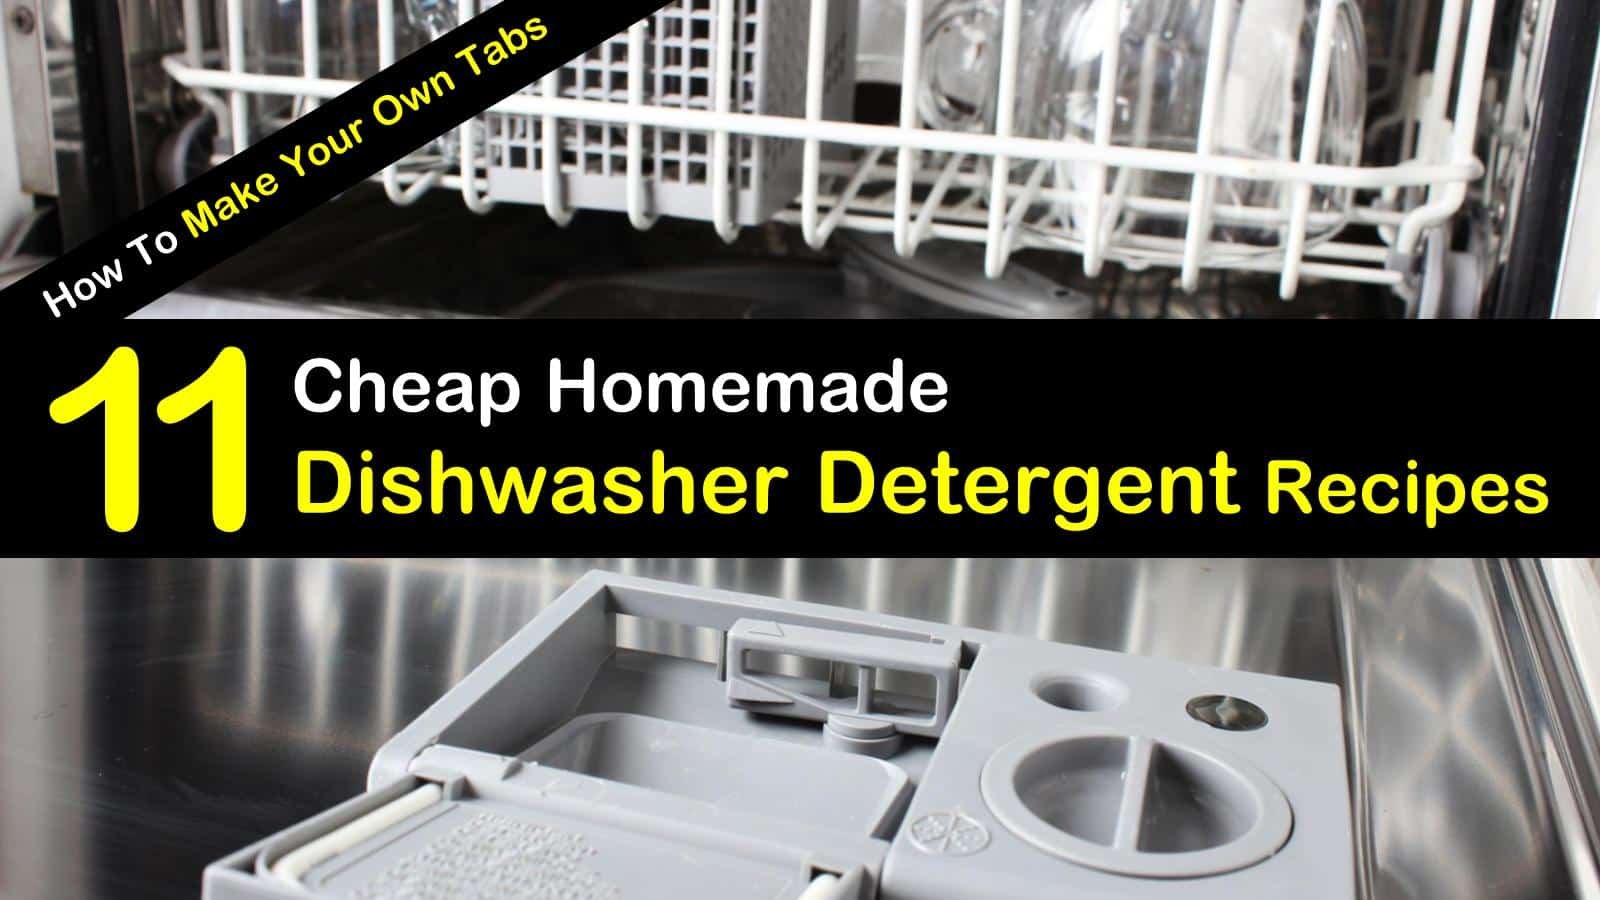 homemade dishwasher detergent titleimg1